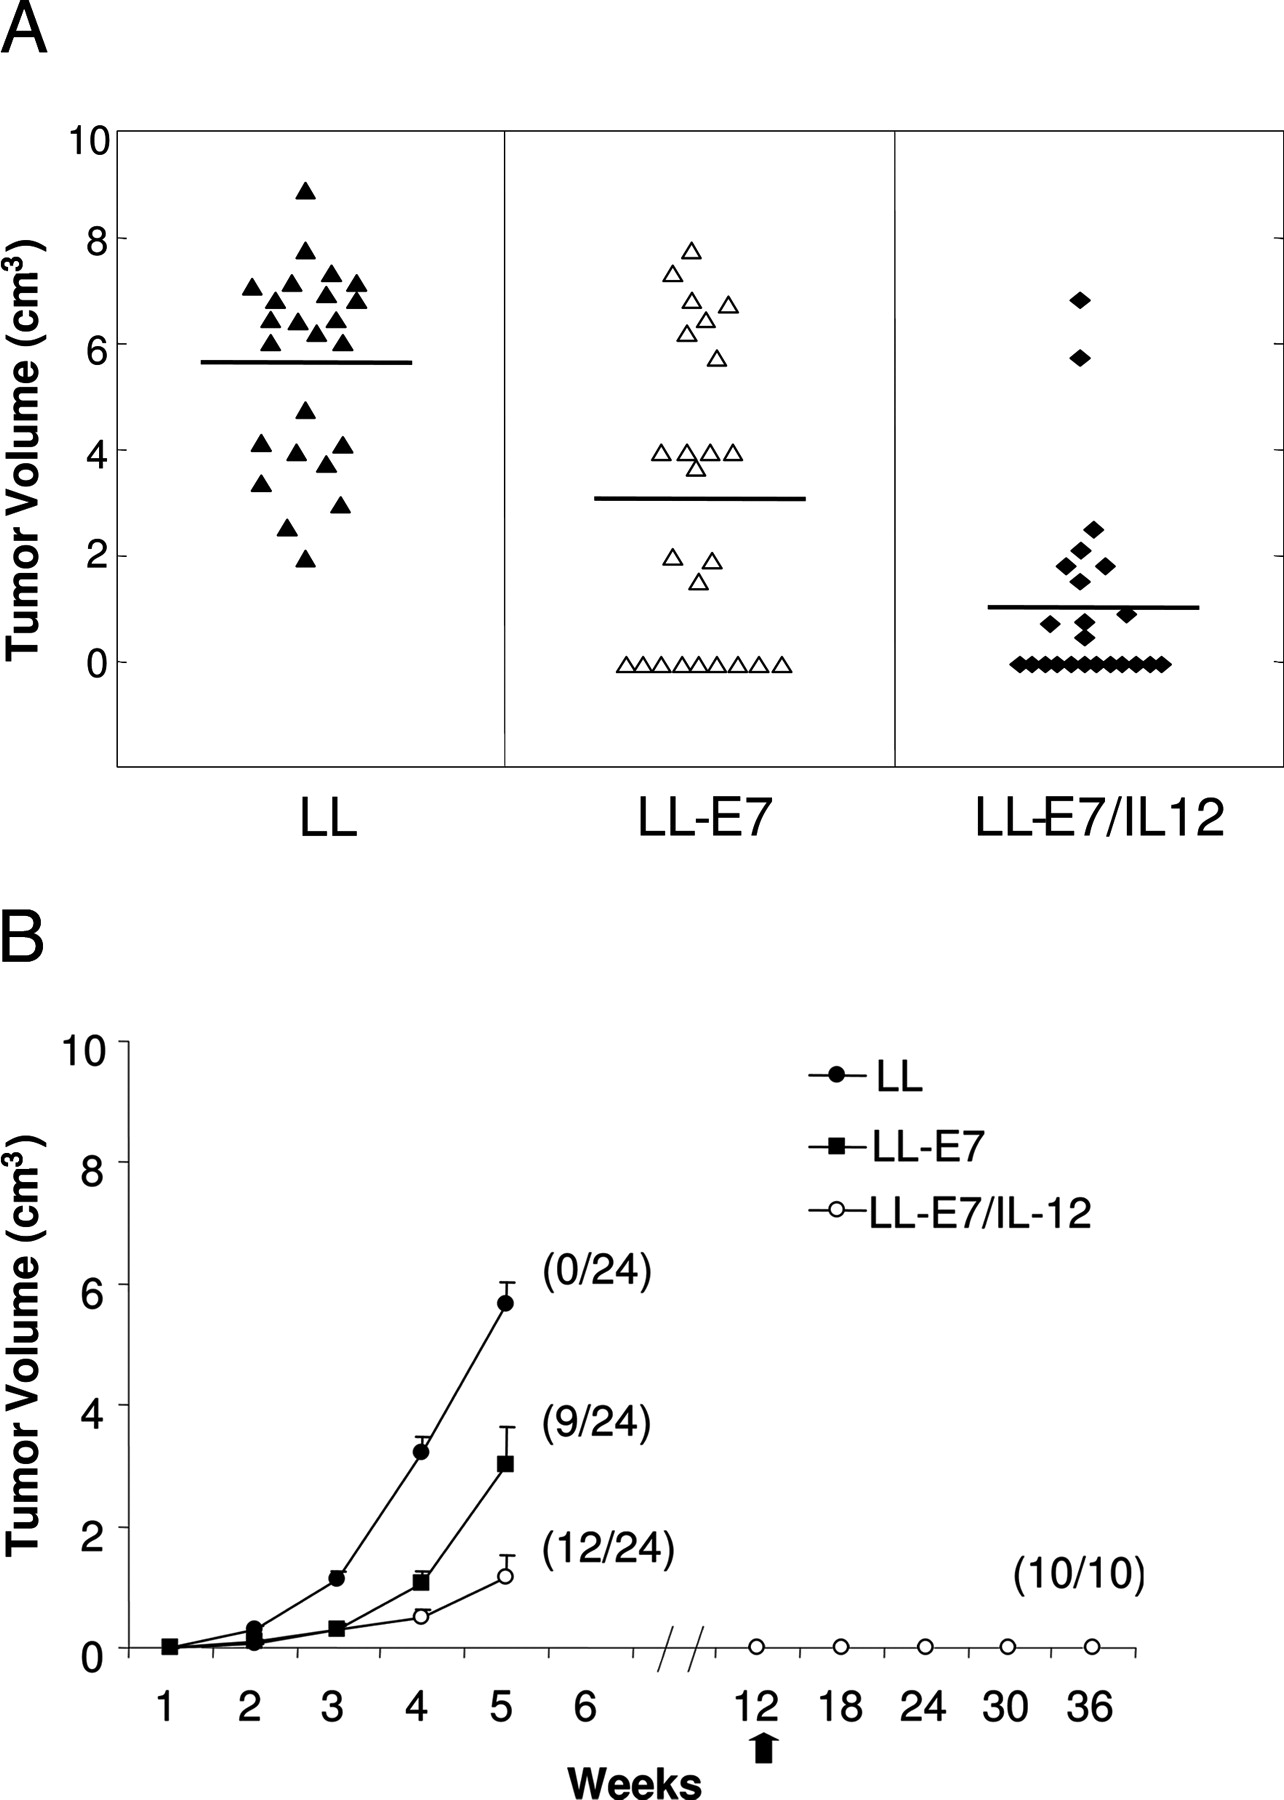 A Novel Mucosal Vaccine Based On Live Lactococci Expressing